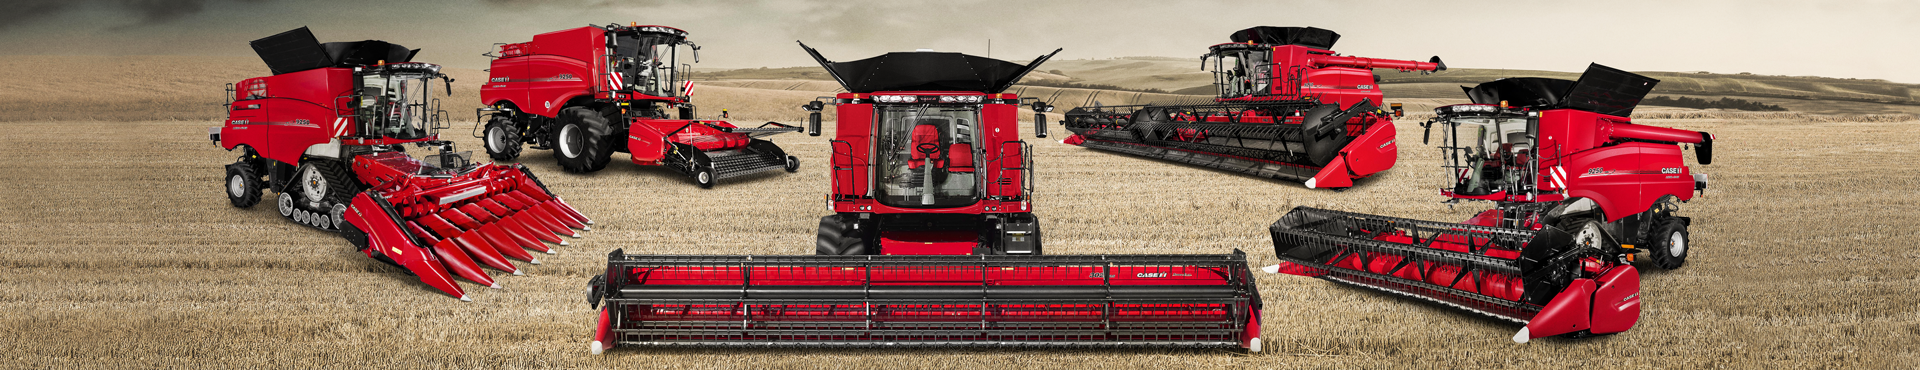 Case-IH-Headers-page